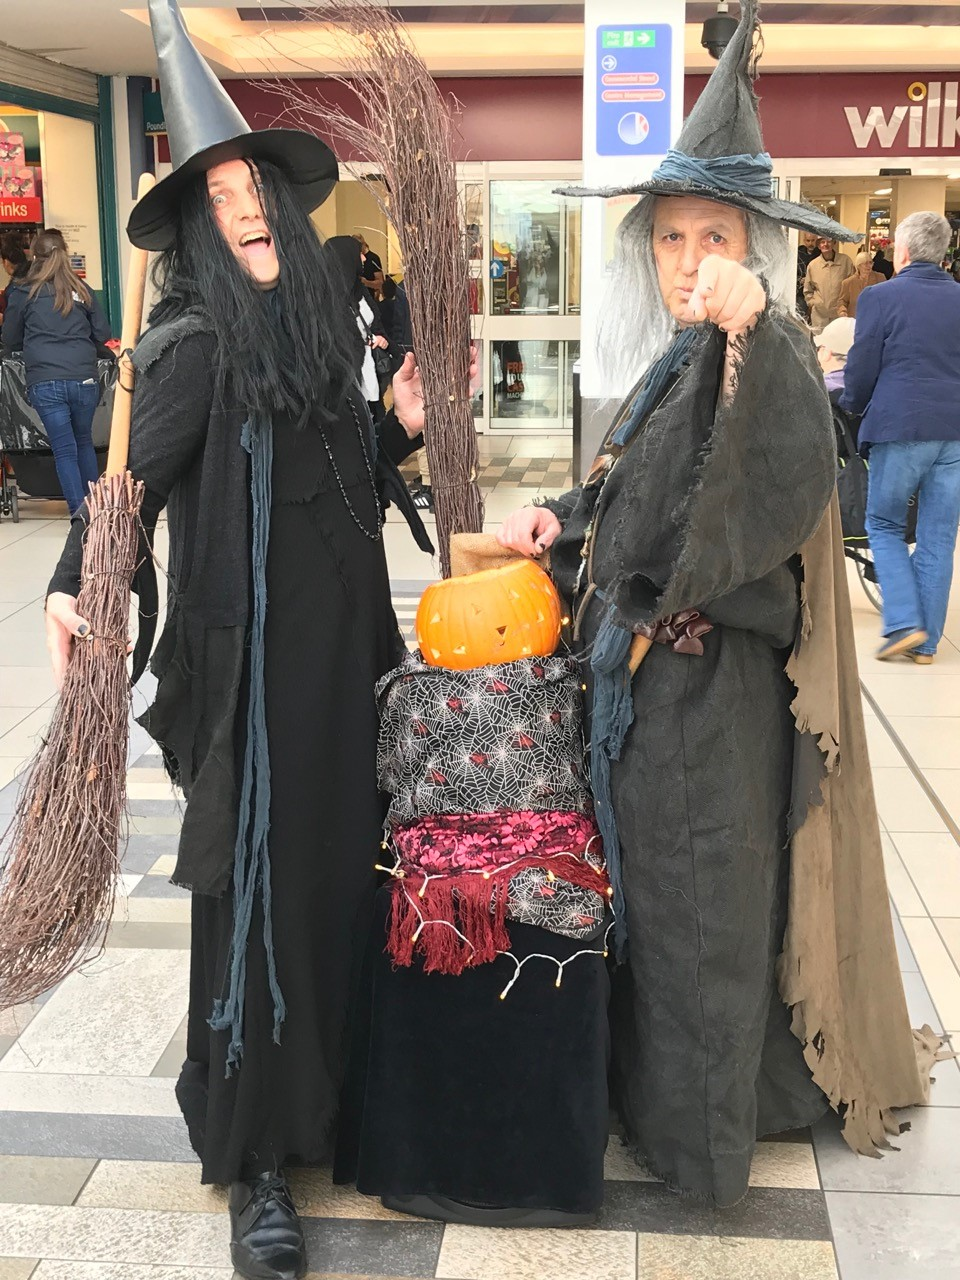 spooky, Halloween, witches, scary, walkabout, spells, sorcerer, broom